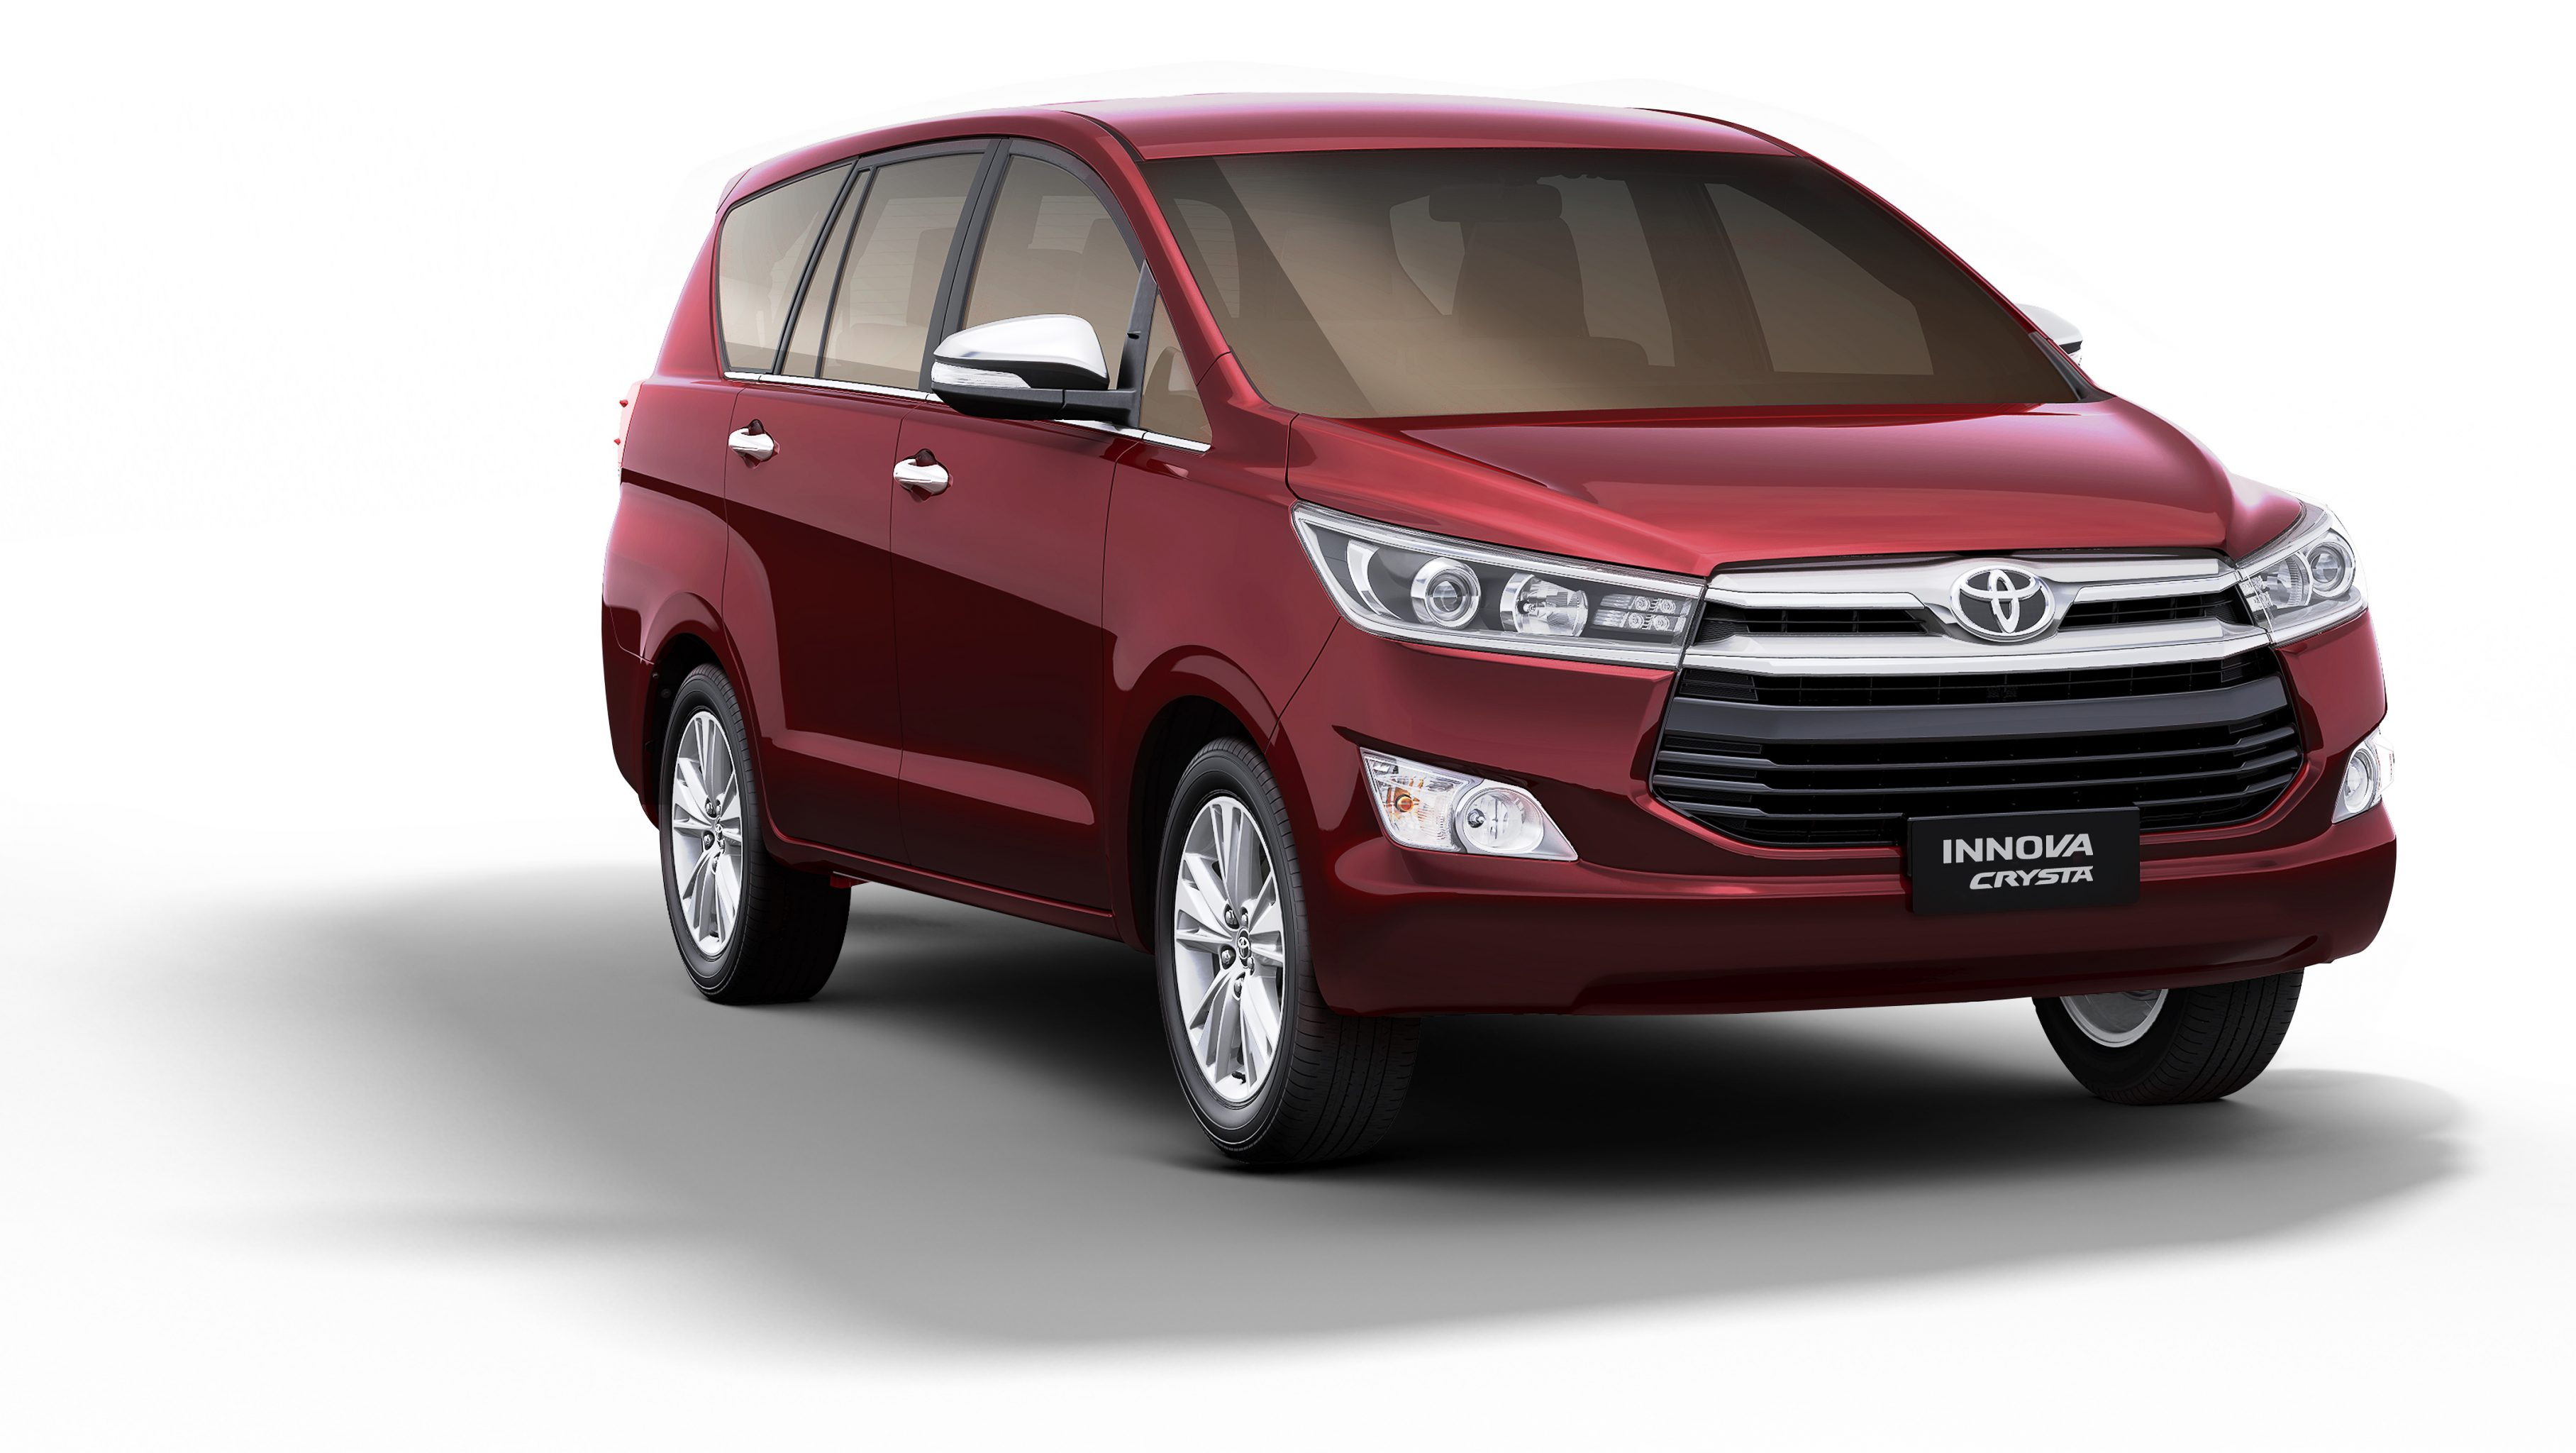 8171 Innova Crysta Sold In June Petrol Variant To Be Launched This Toyota New Month